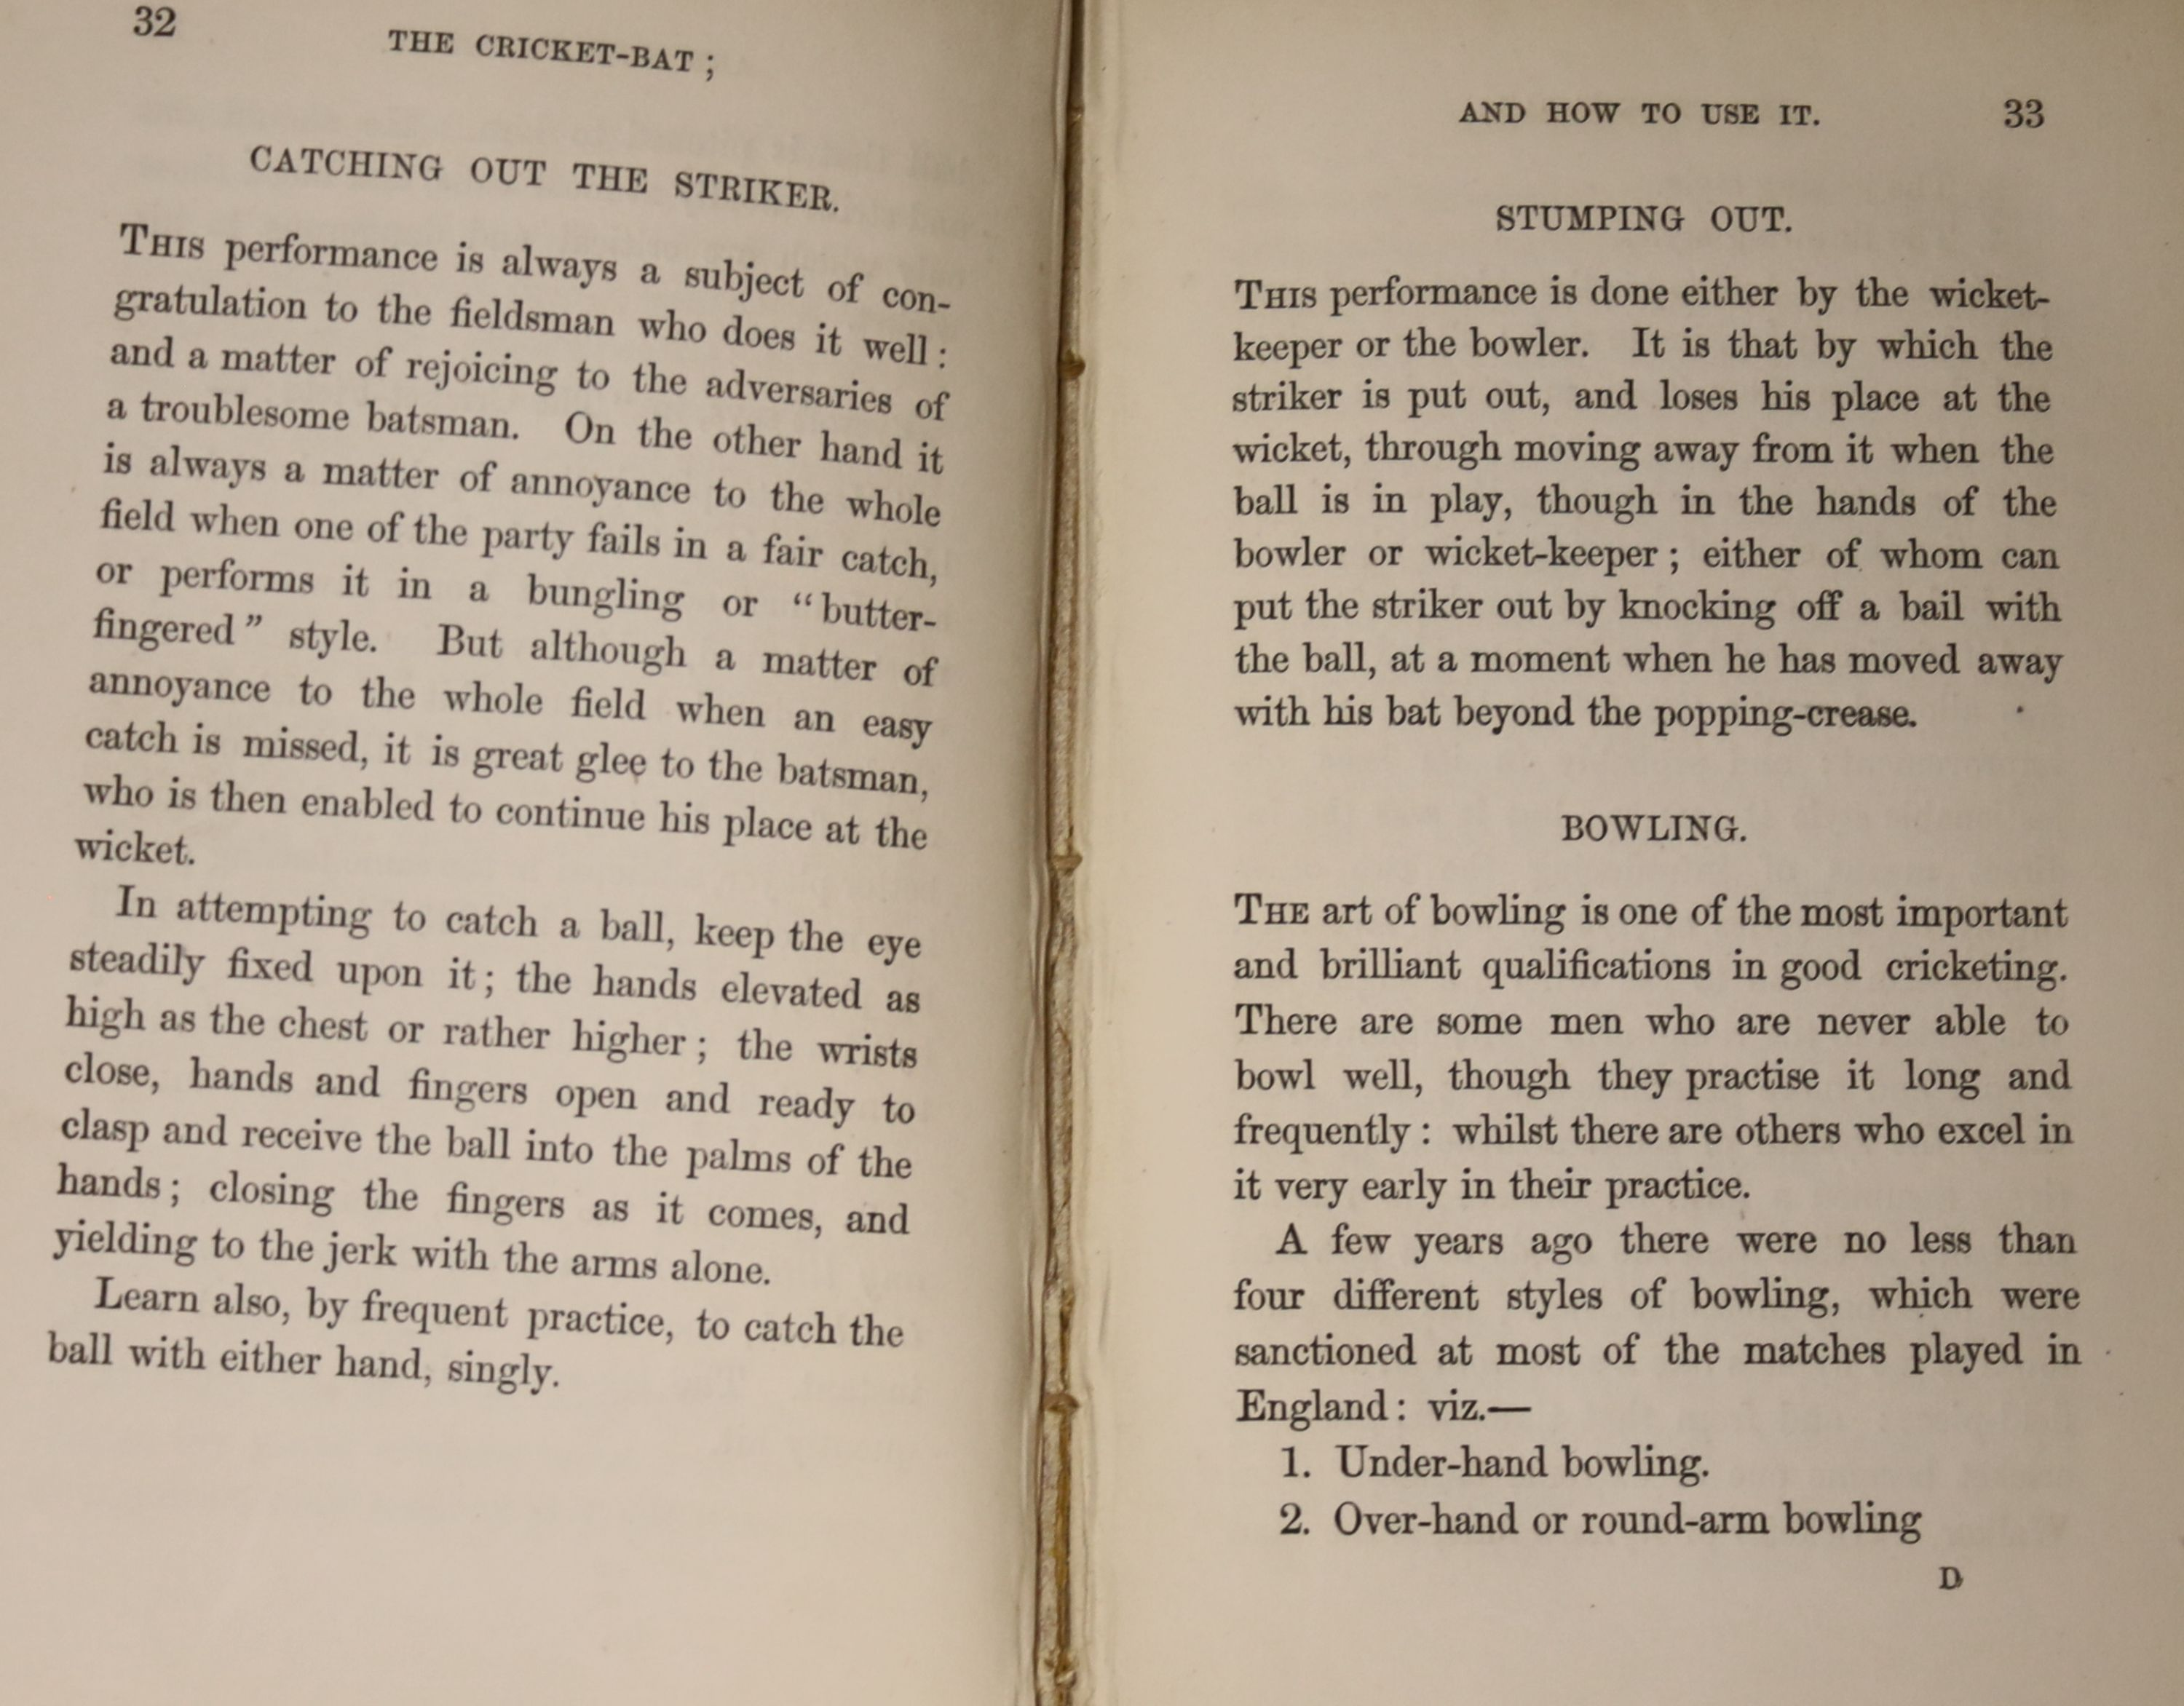 [Wanostrocht, Nicholas] - The Cricket-Bat; and How To Use It; a treatise on the game of cricket ..., - Image 5 of 5